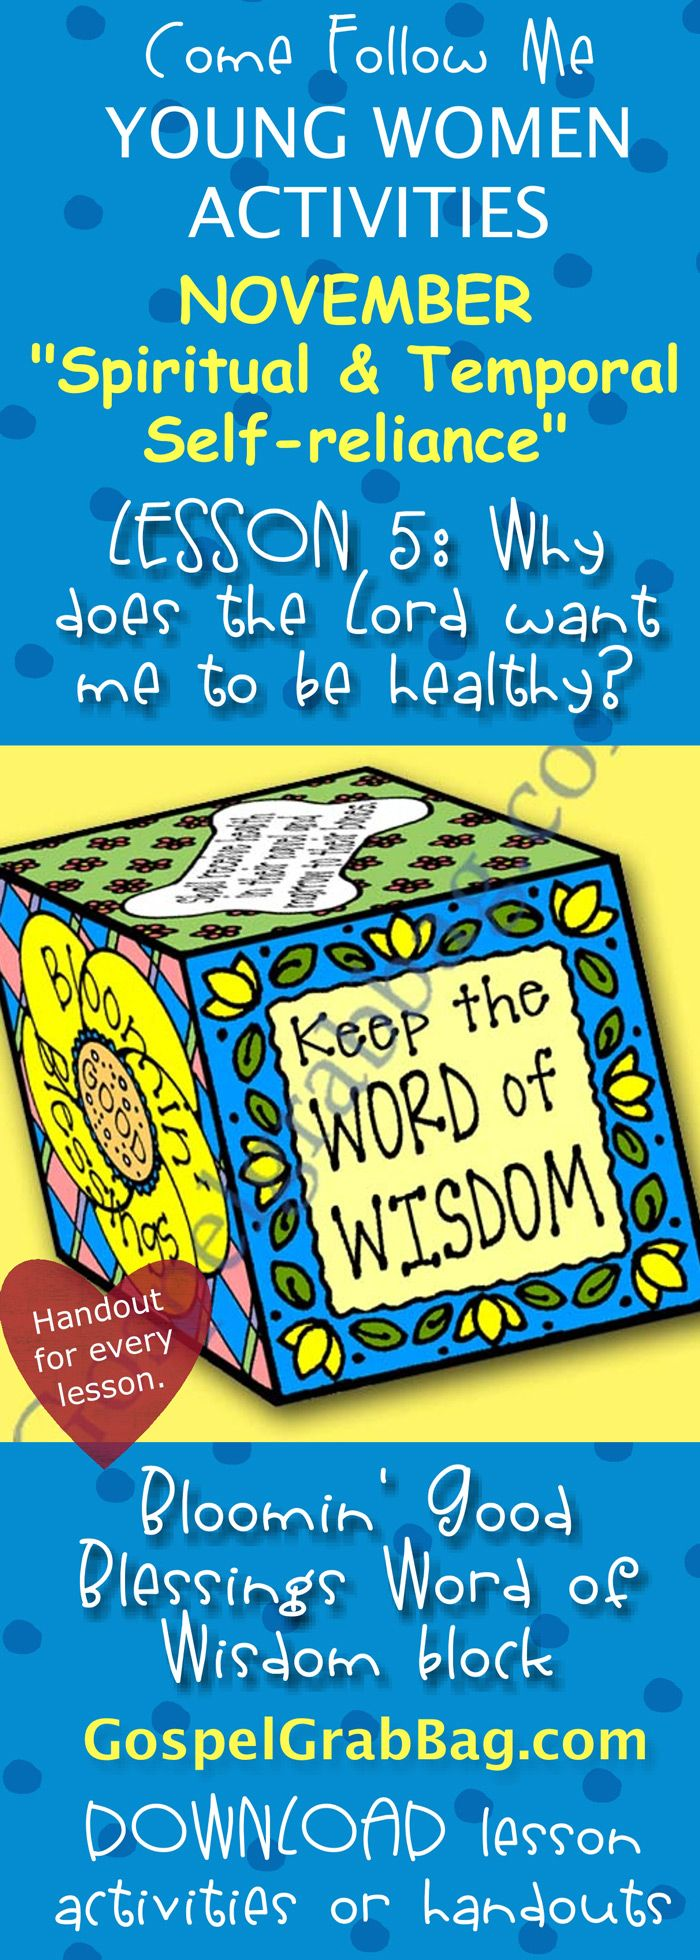 """BLOOMIN' GOOD BLESSINGS WORD OF WISDOM BLOCK – Activity for November """"Come, Follow Me"""" Young Women – Theme: """"Spiritual and Temporal Self-Reliance"""" – Lesson #5 Theme: Why does the Lord want me to be healthy? - LDS - Christian lesson activities to download from gospelgrabbag.com"""